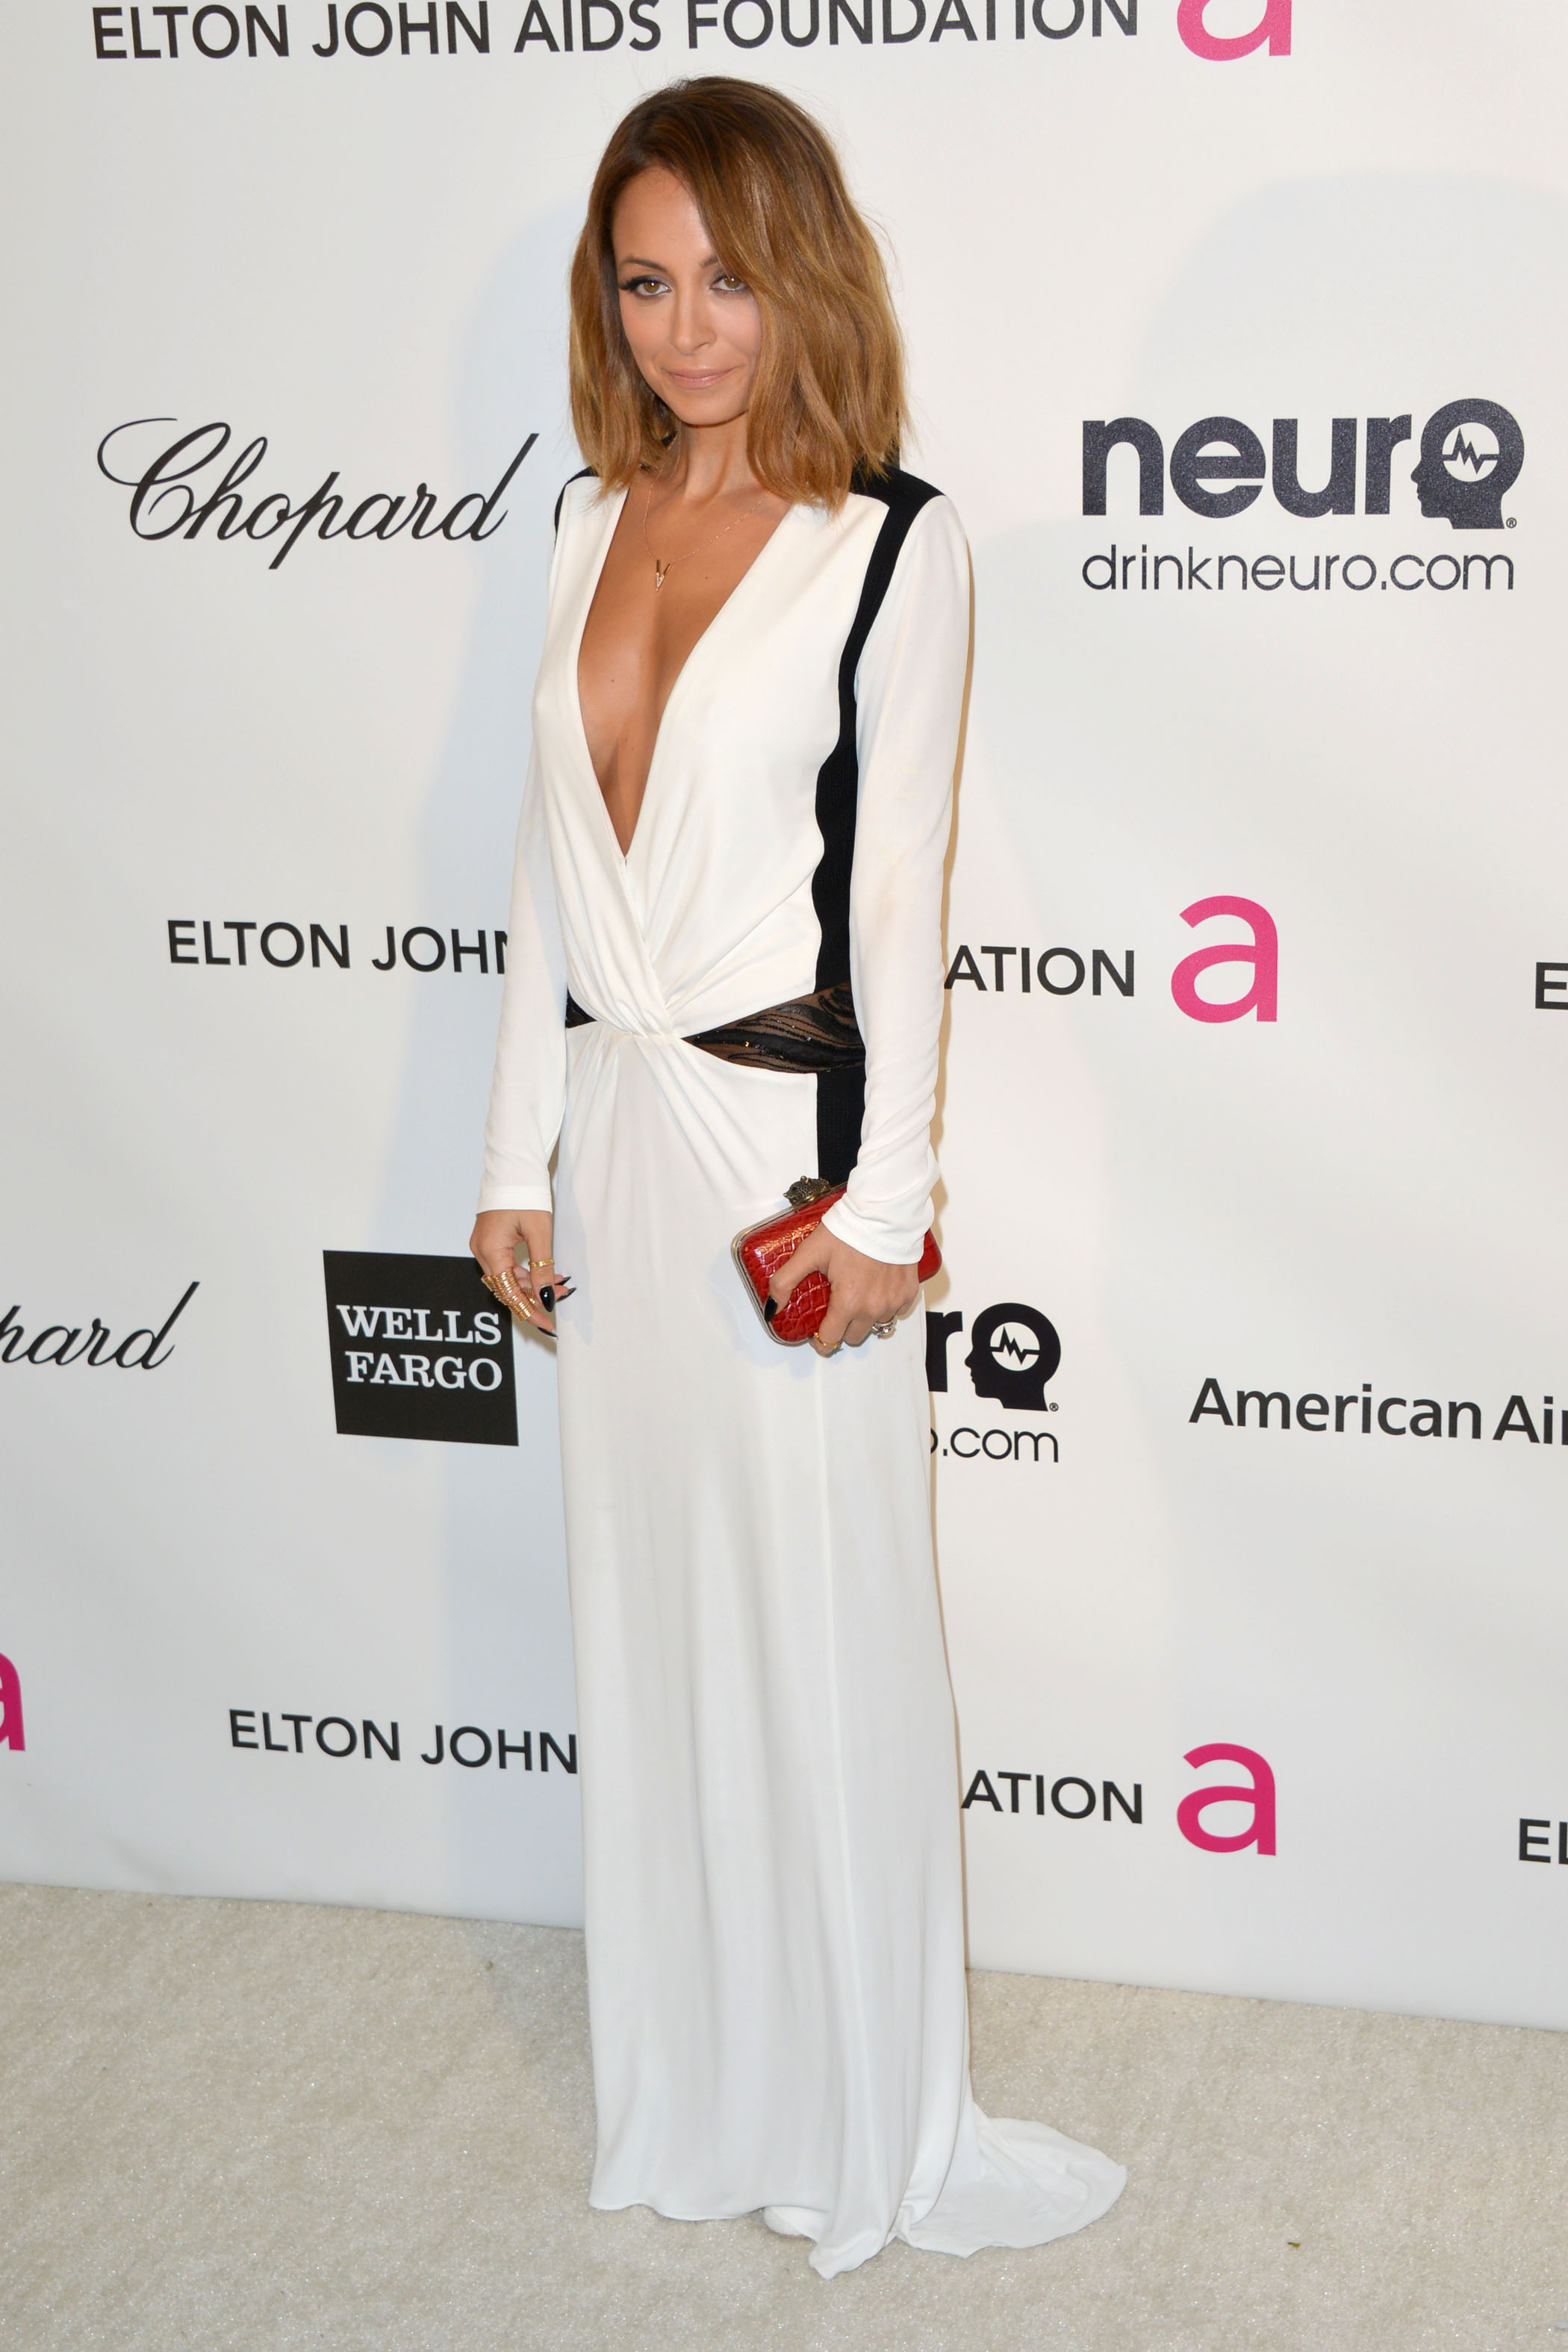 The 85th Academy Awards - 21st Annual Sir Elton John Oscar Party - Los Angeles